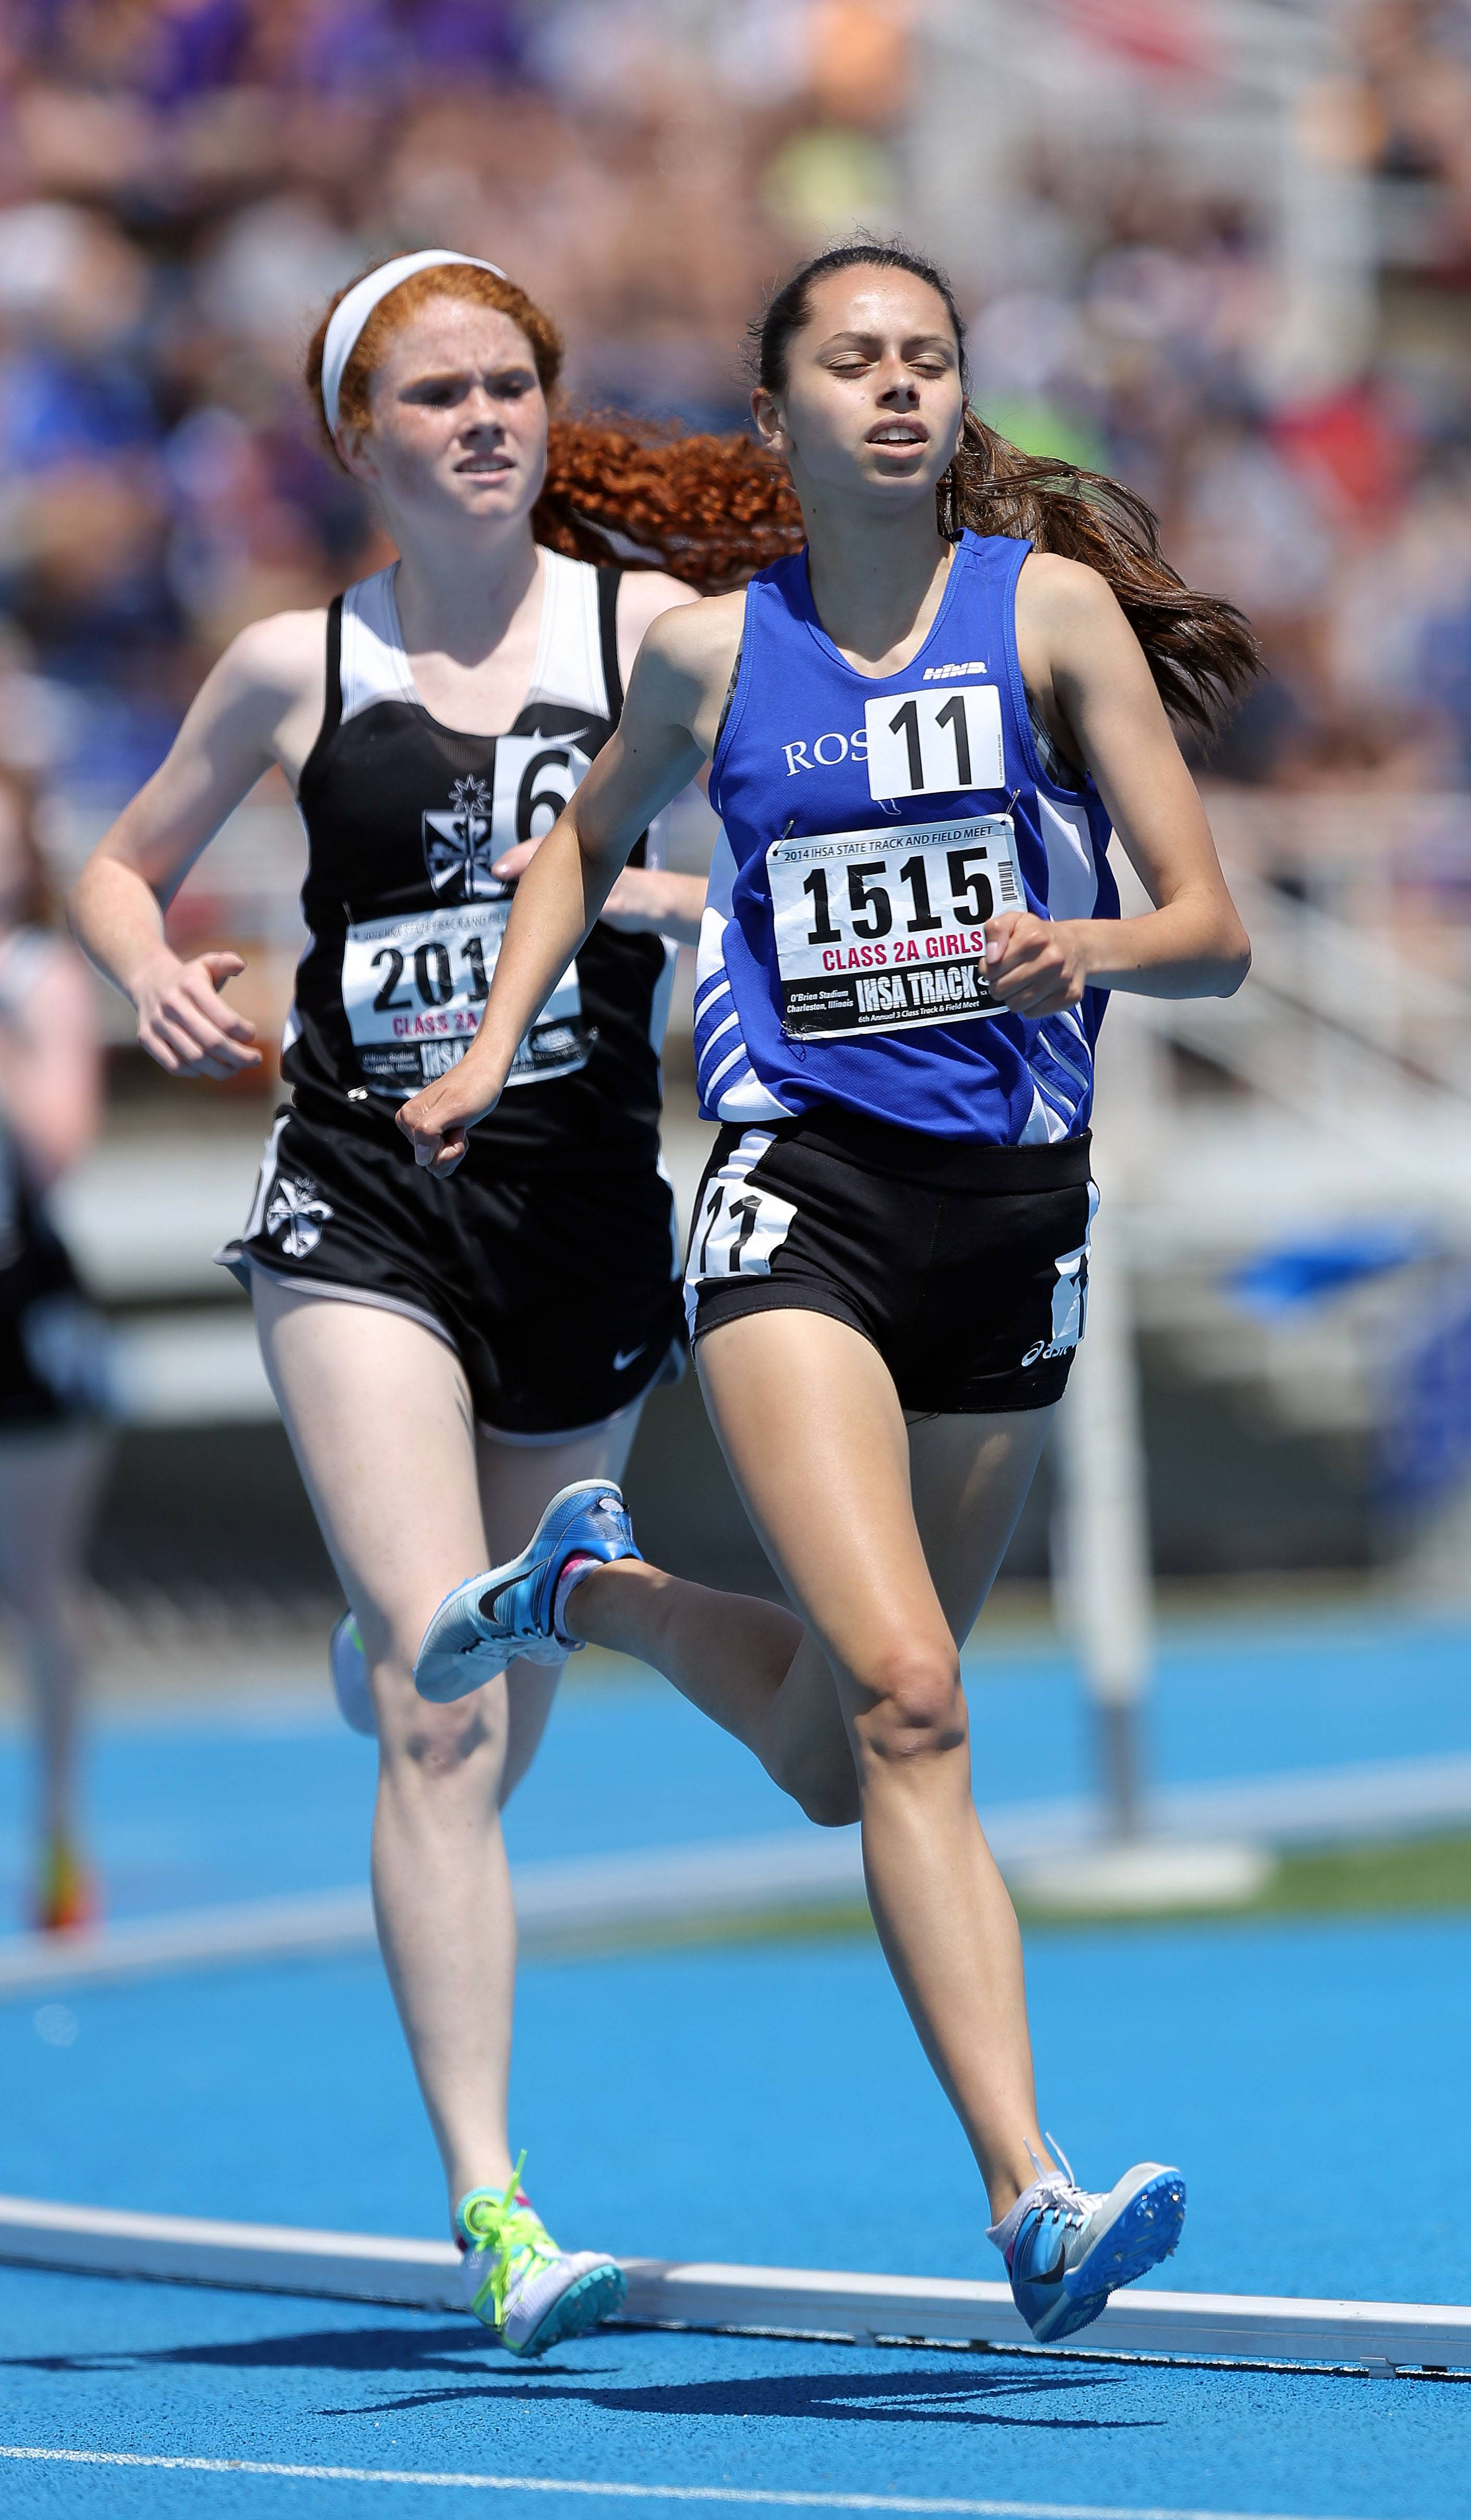 Rosary's Madison Ronzone runs in the 1600-meter run during the prelims of the girls track and field state meet at Eastern Illinois University in Charleston Friday.